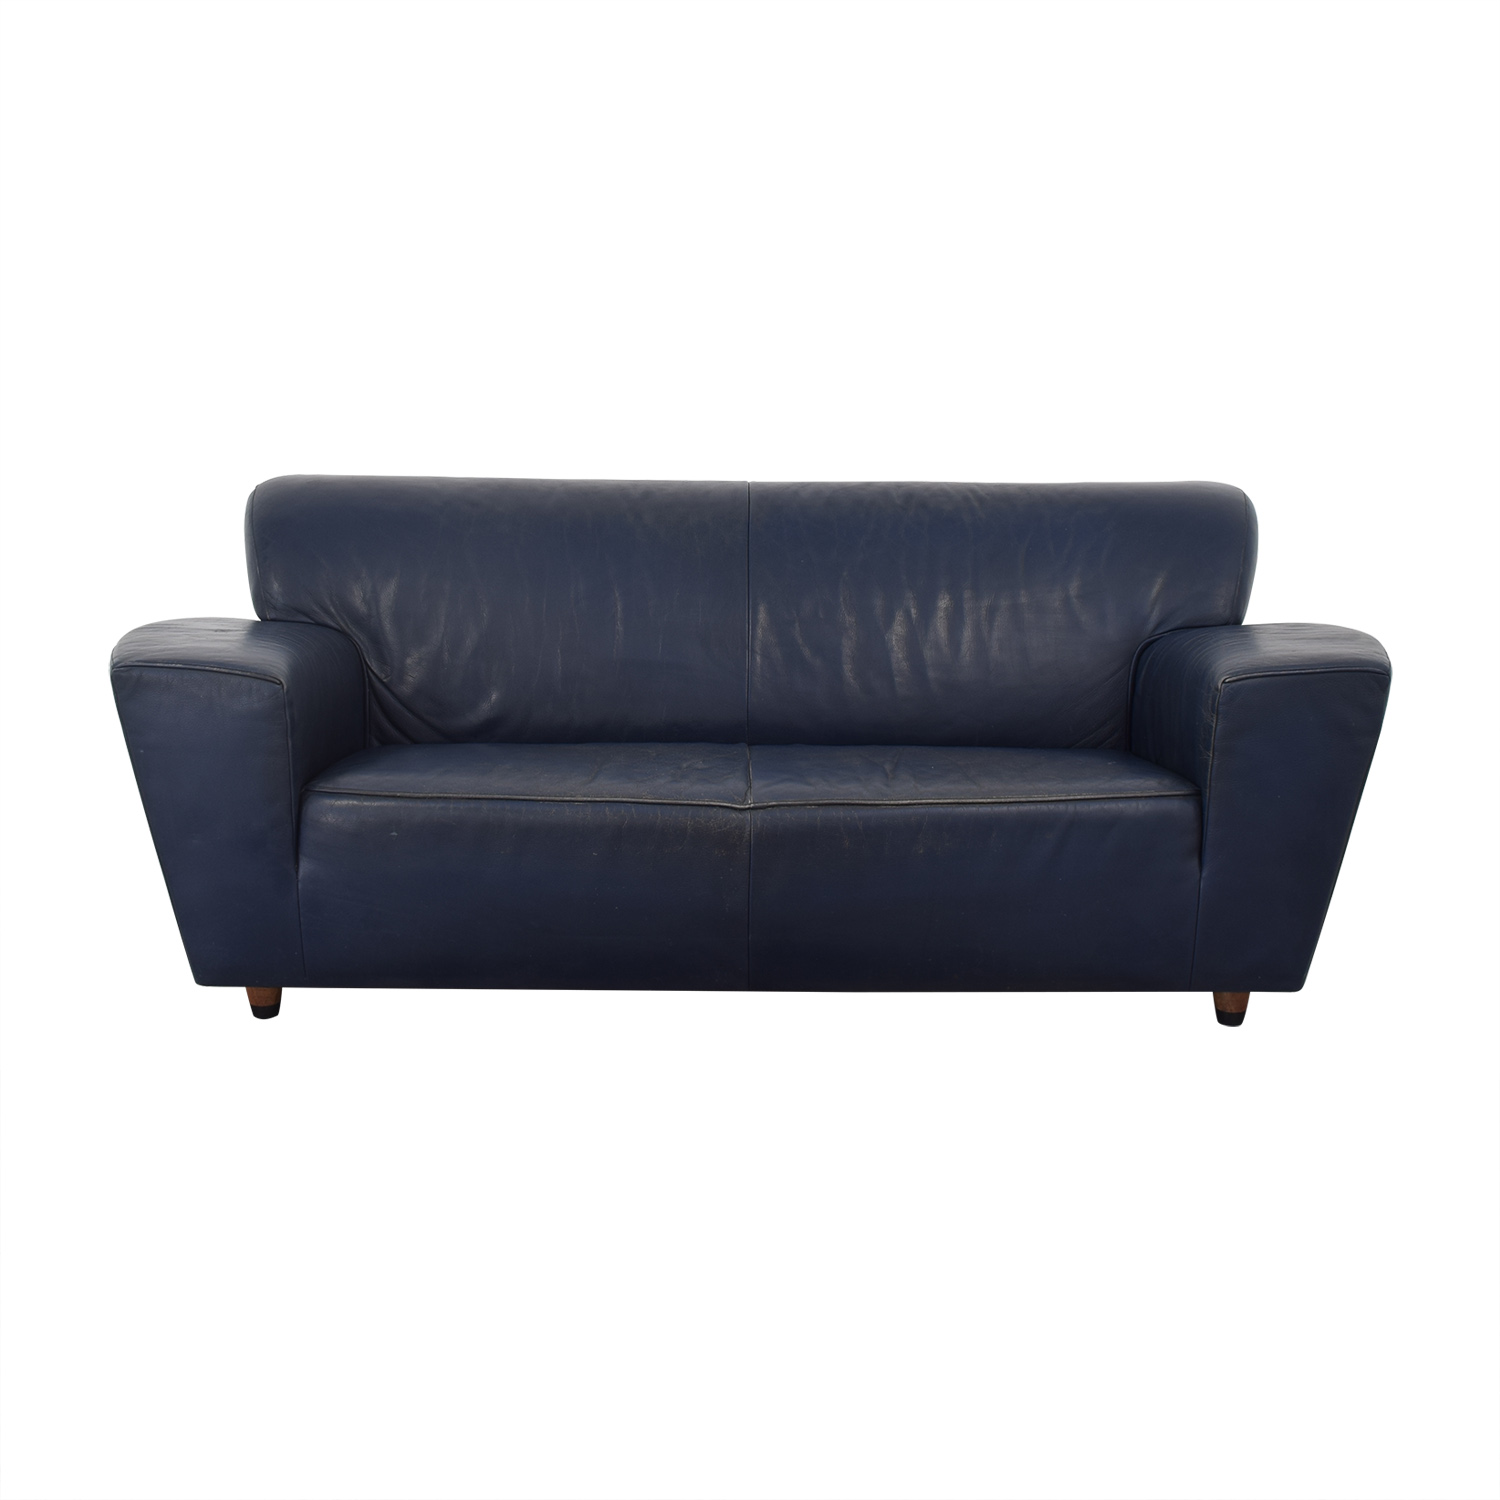 DDC DDC Modern Sofa for sale